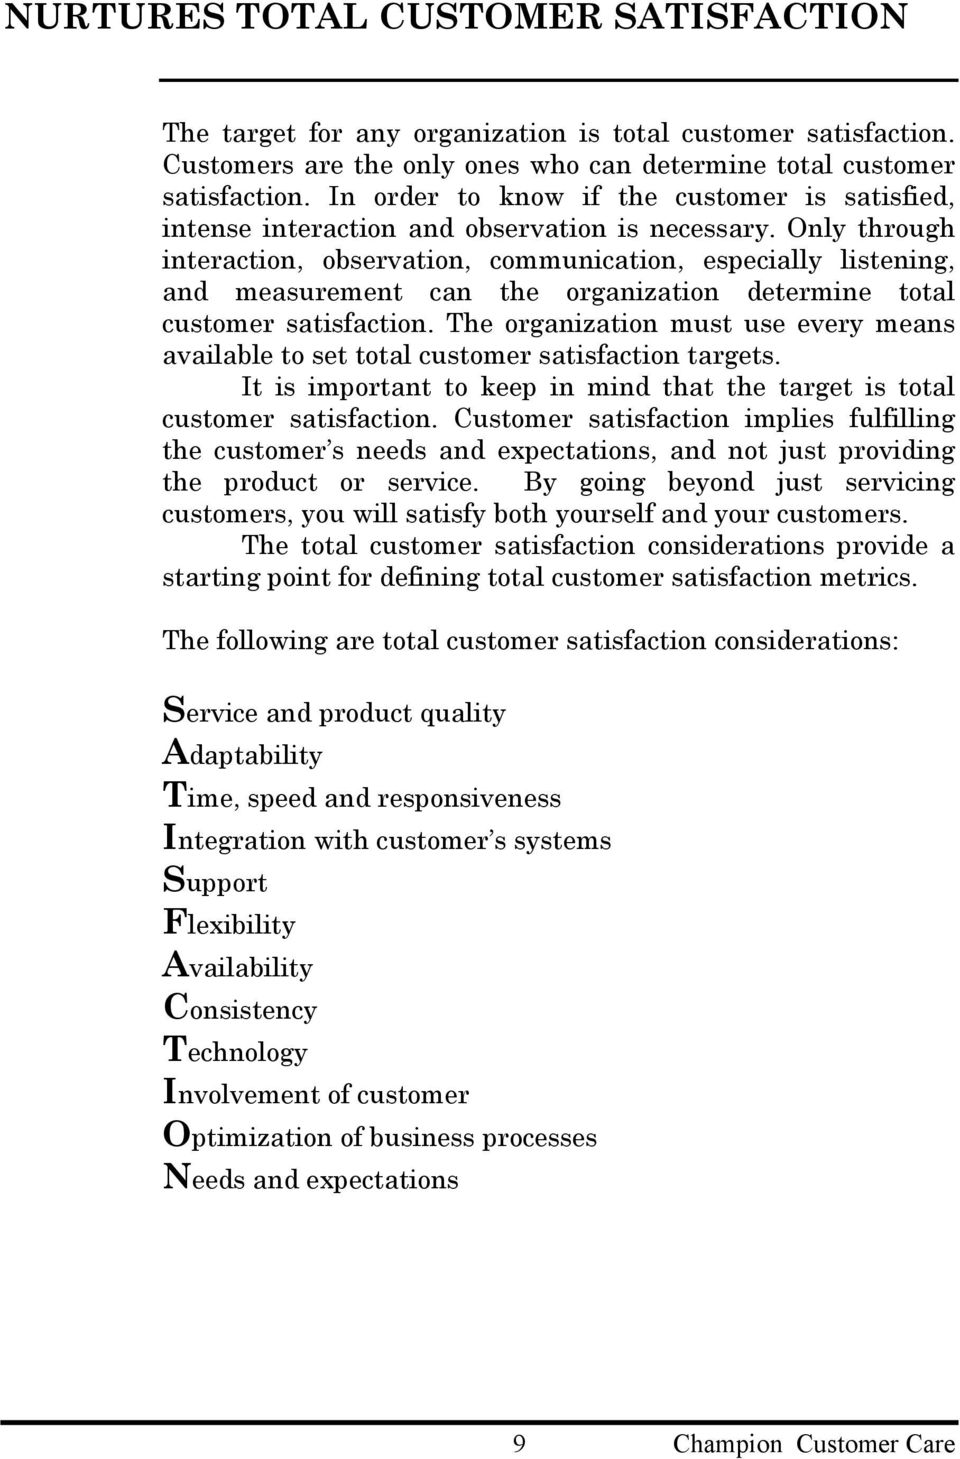 Only through interaction, observation, communication, especially listening, and measurement can the organization determine total customer satisfaction.